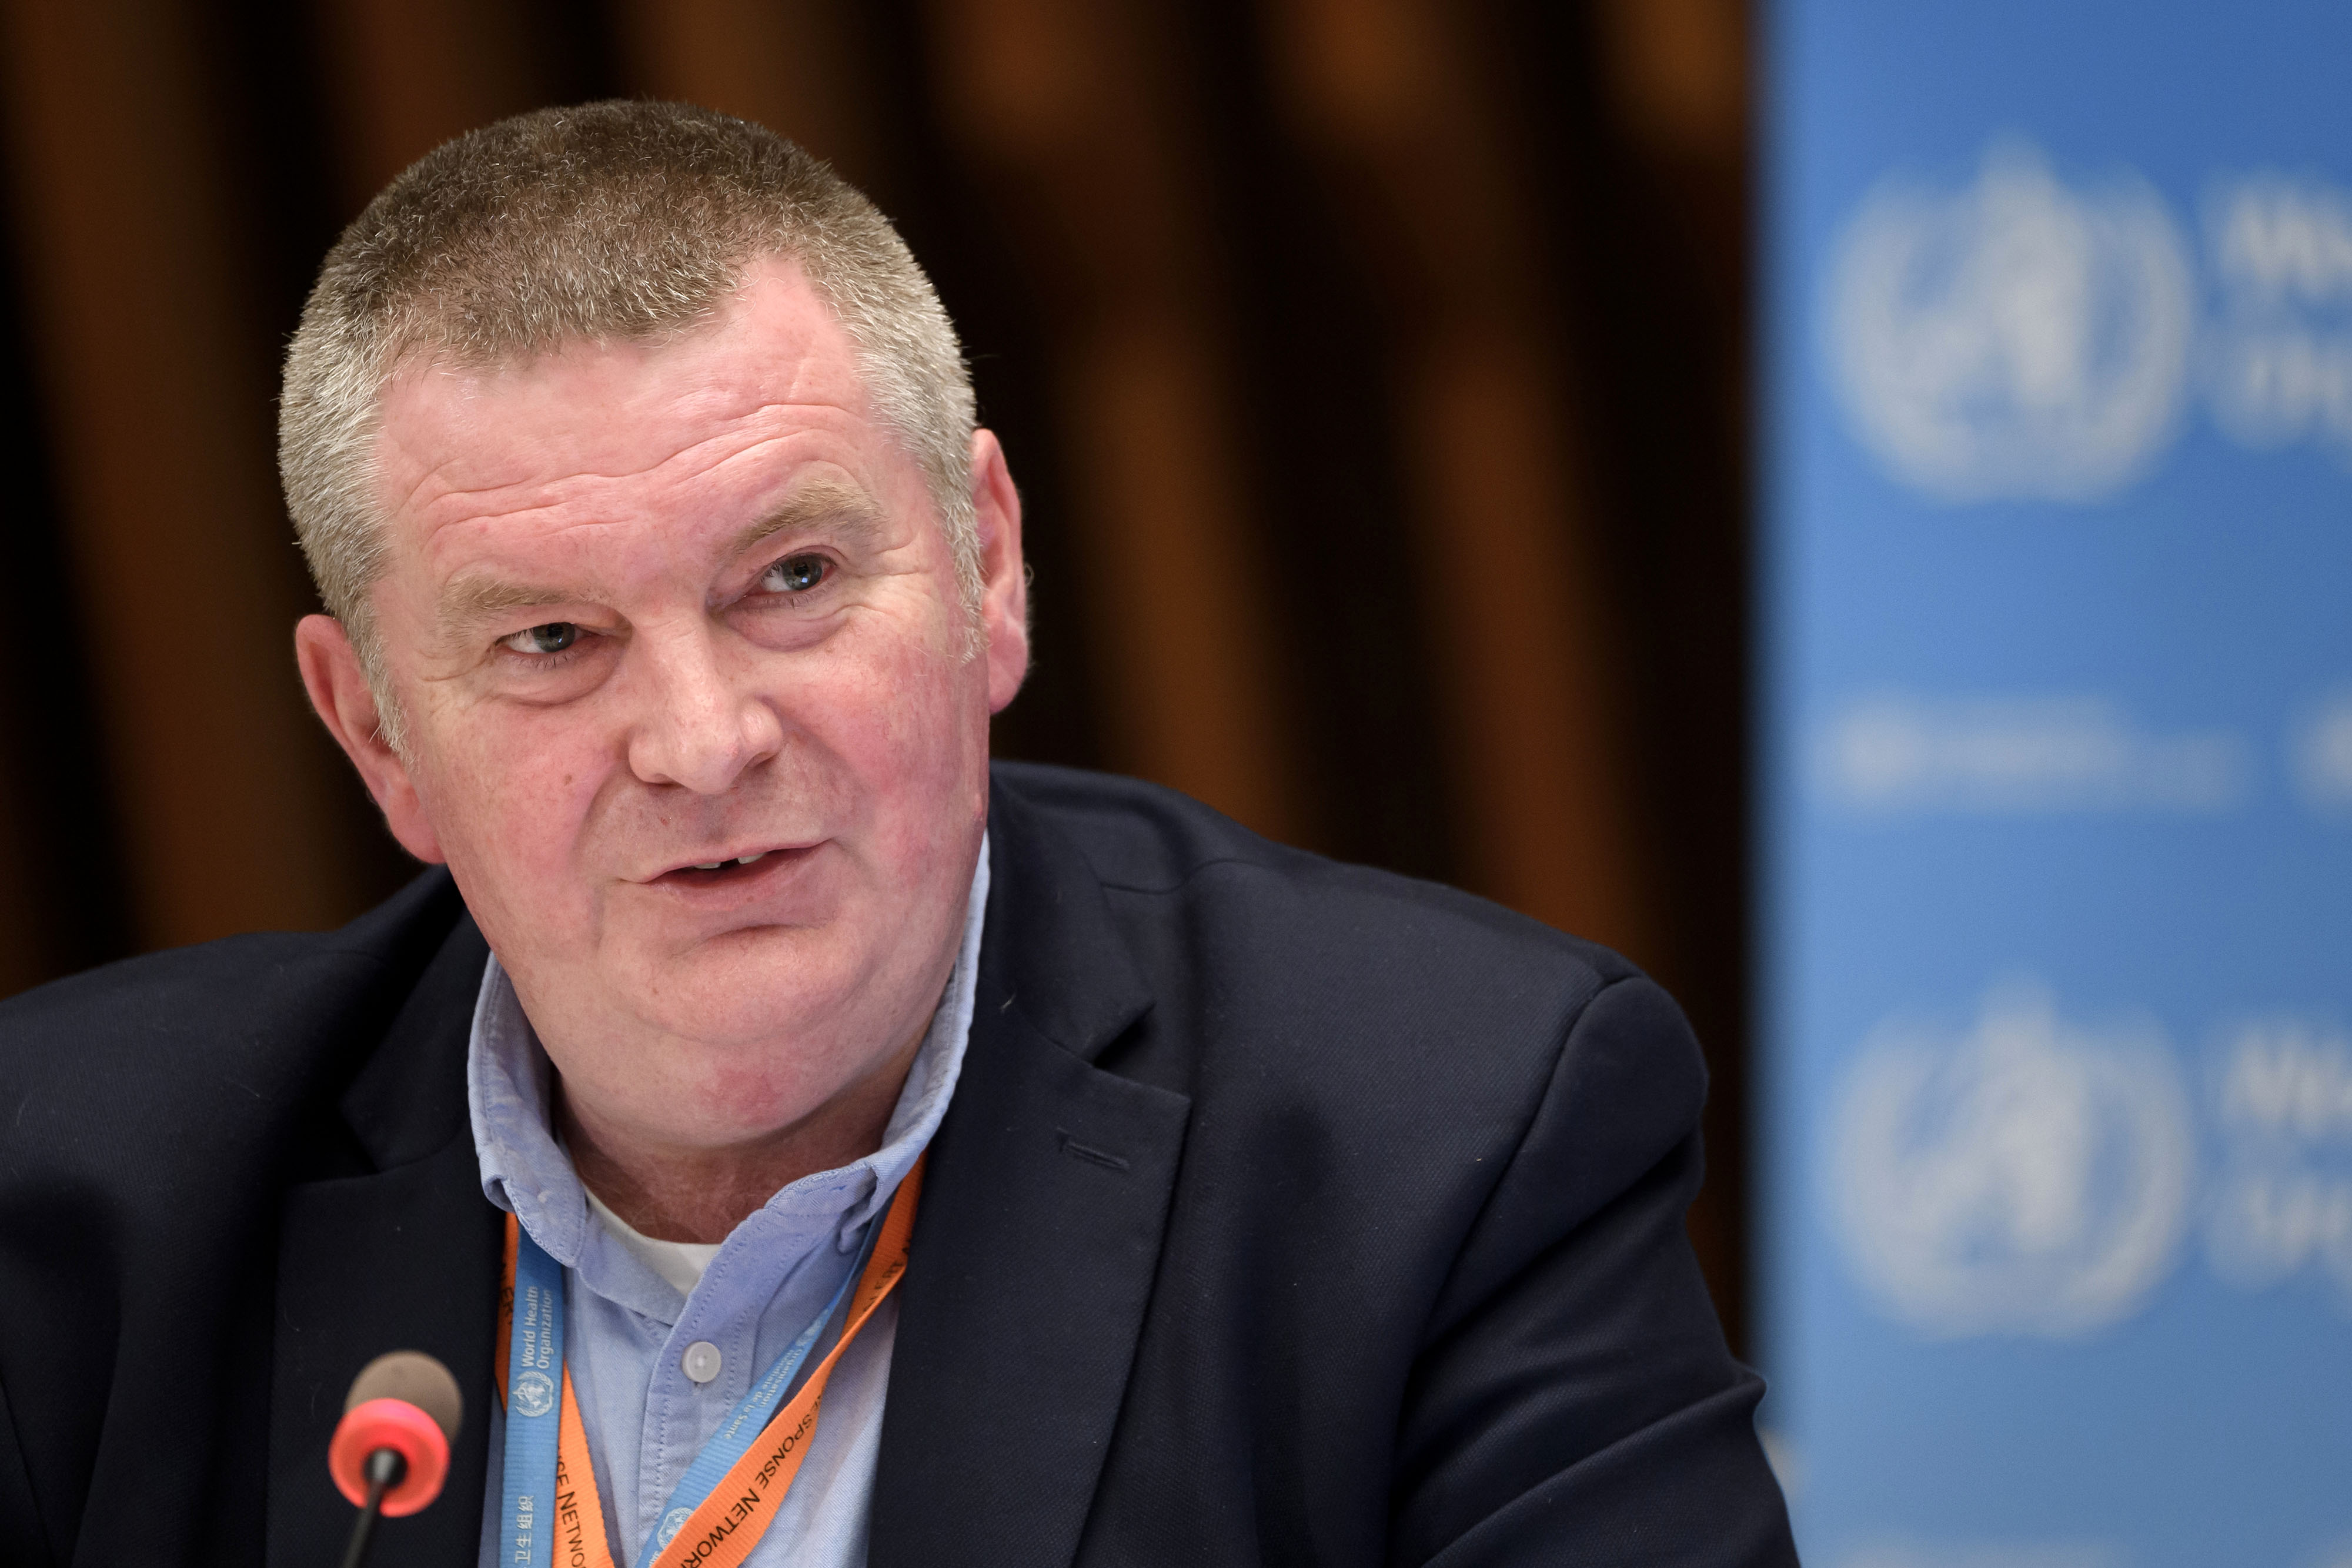 Dr. Mike Ryan,executive director of WHO's Health Emergencies Programme, attends a press conference in Geneva, Switzerland, on July 3.